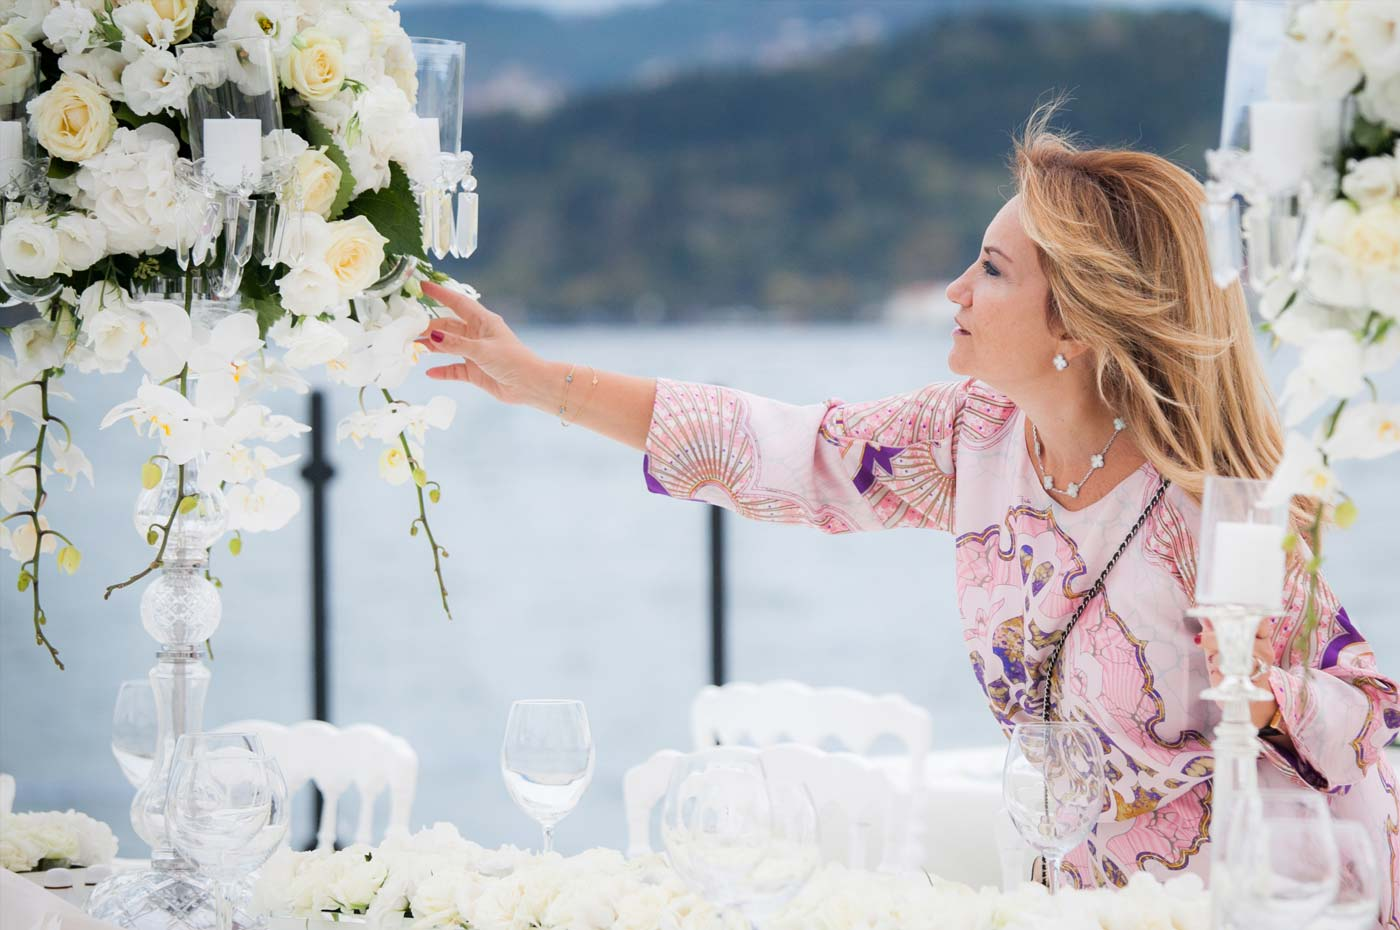 The 5 Major Reasons You Should Hire a Wedding Planner